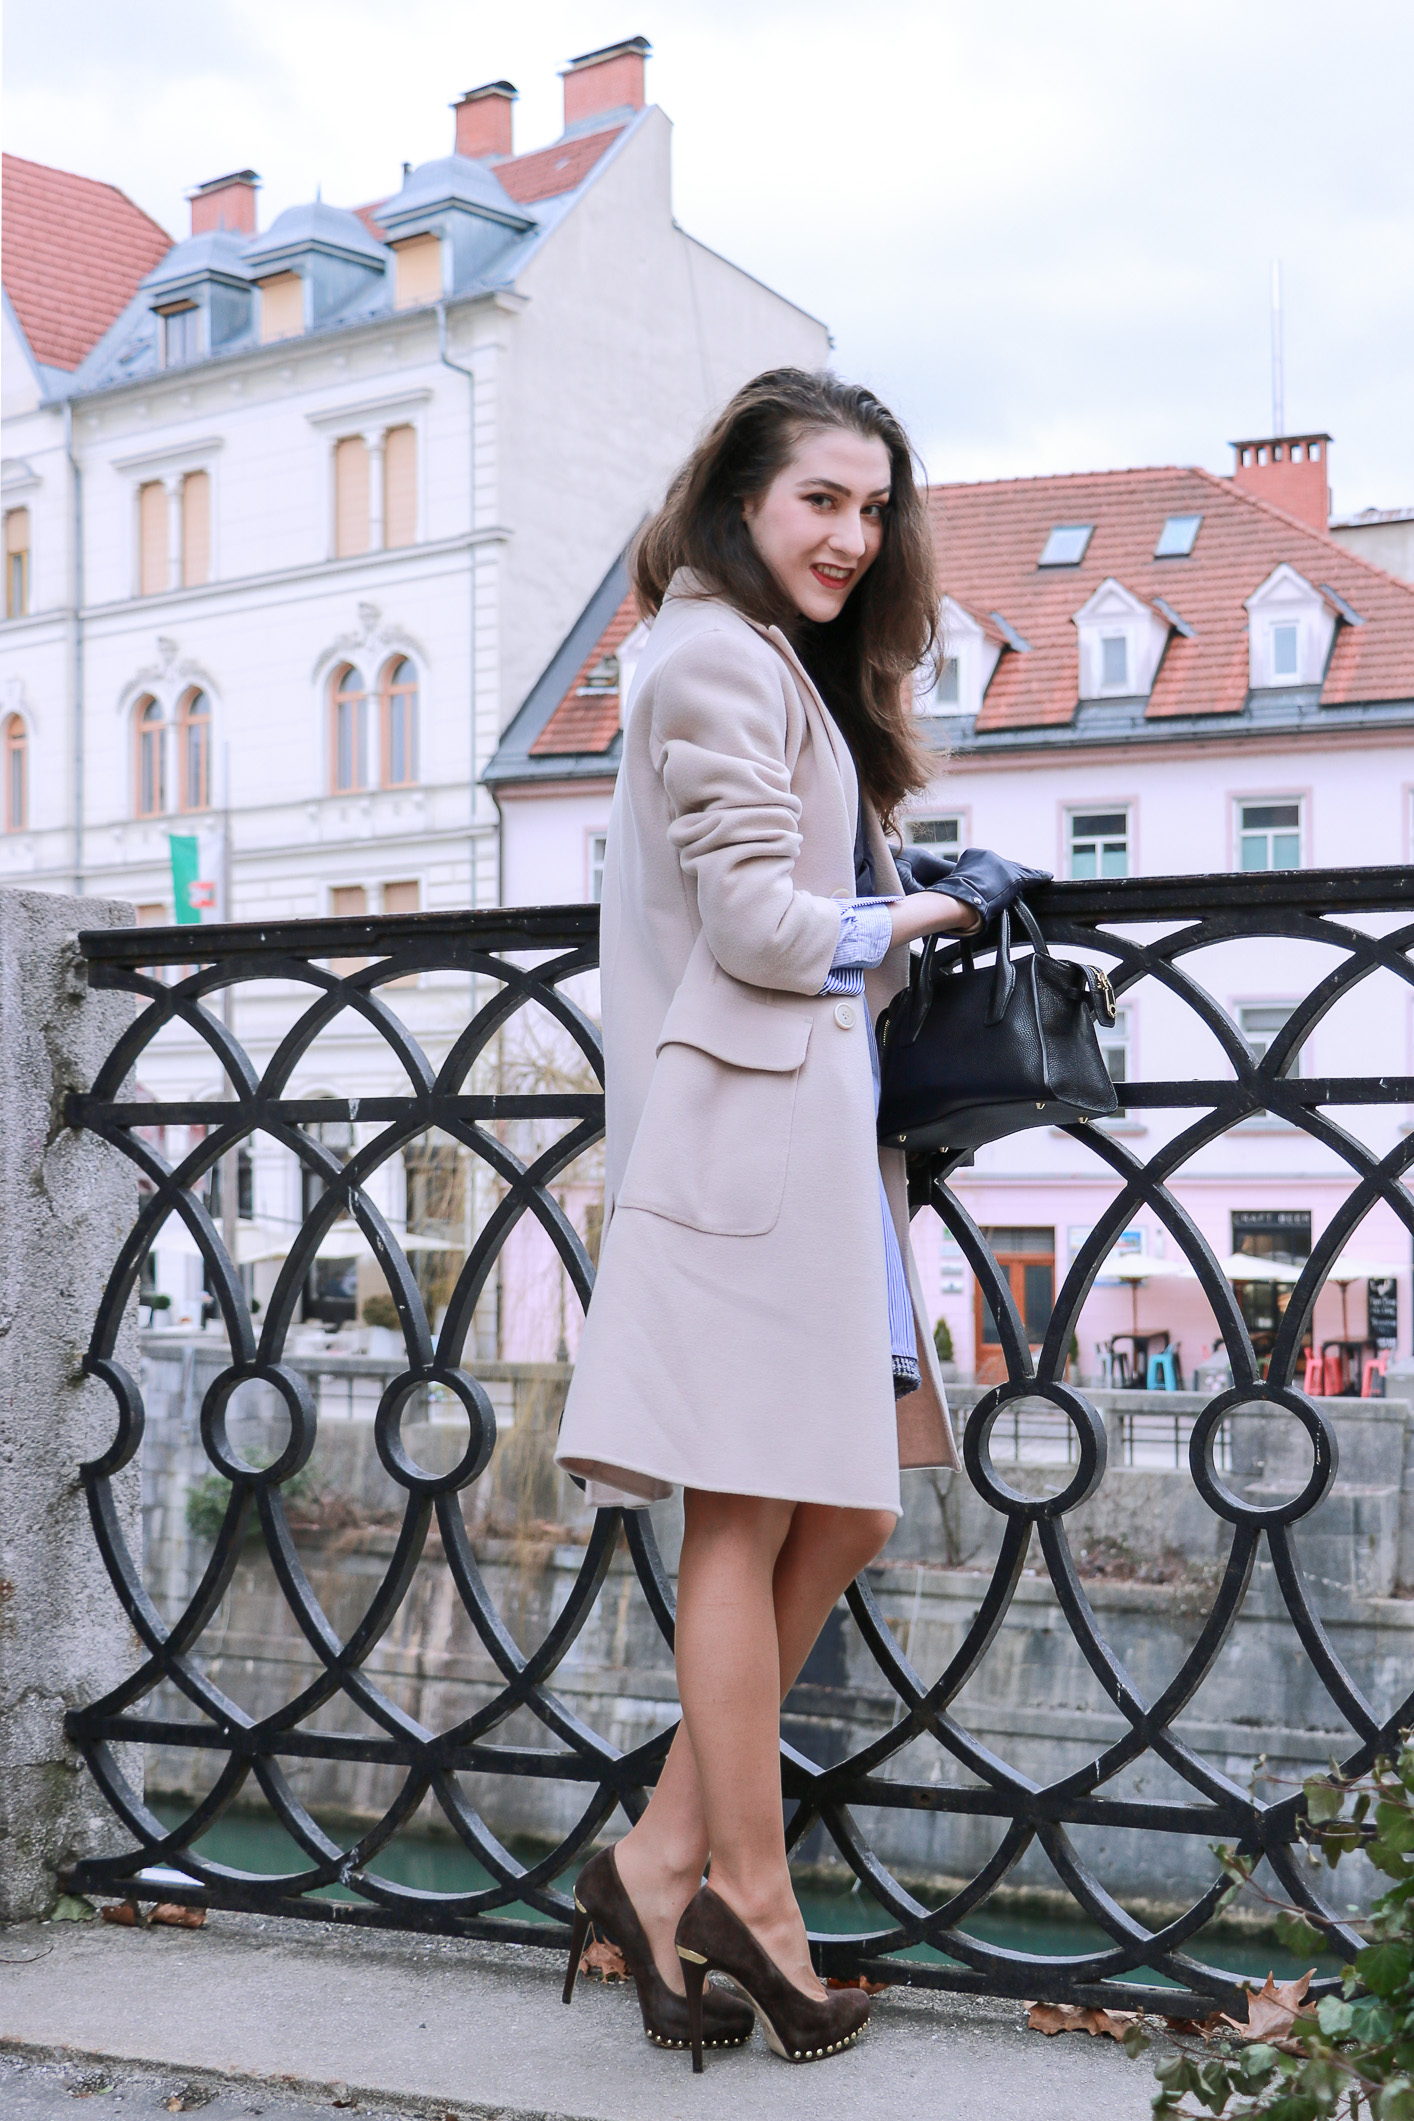 Fashion Blogger Veronika Lipar of Brunette from Wall Street sharing how to style your boyfriend's shirt and wear it as a shirt dress